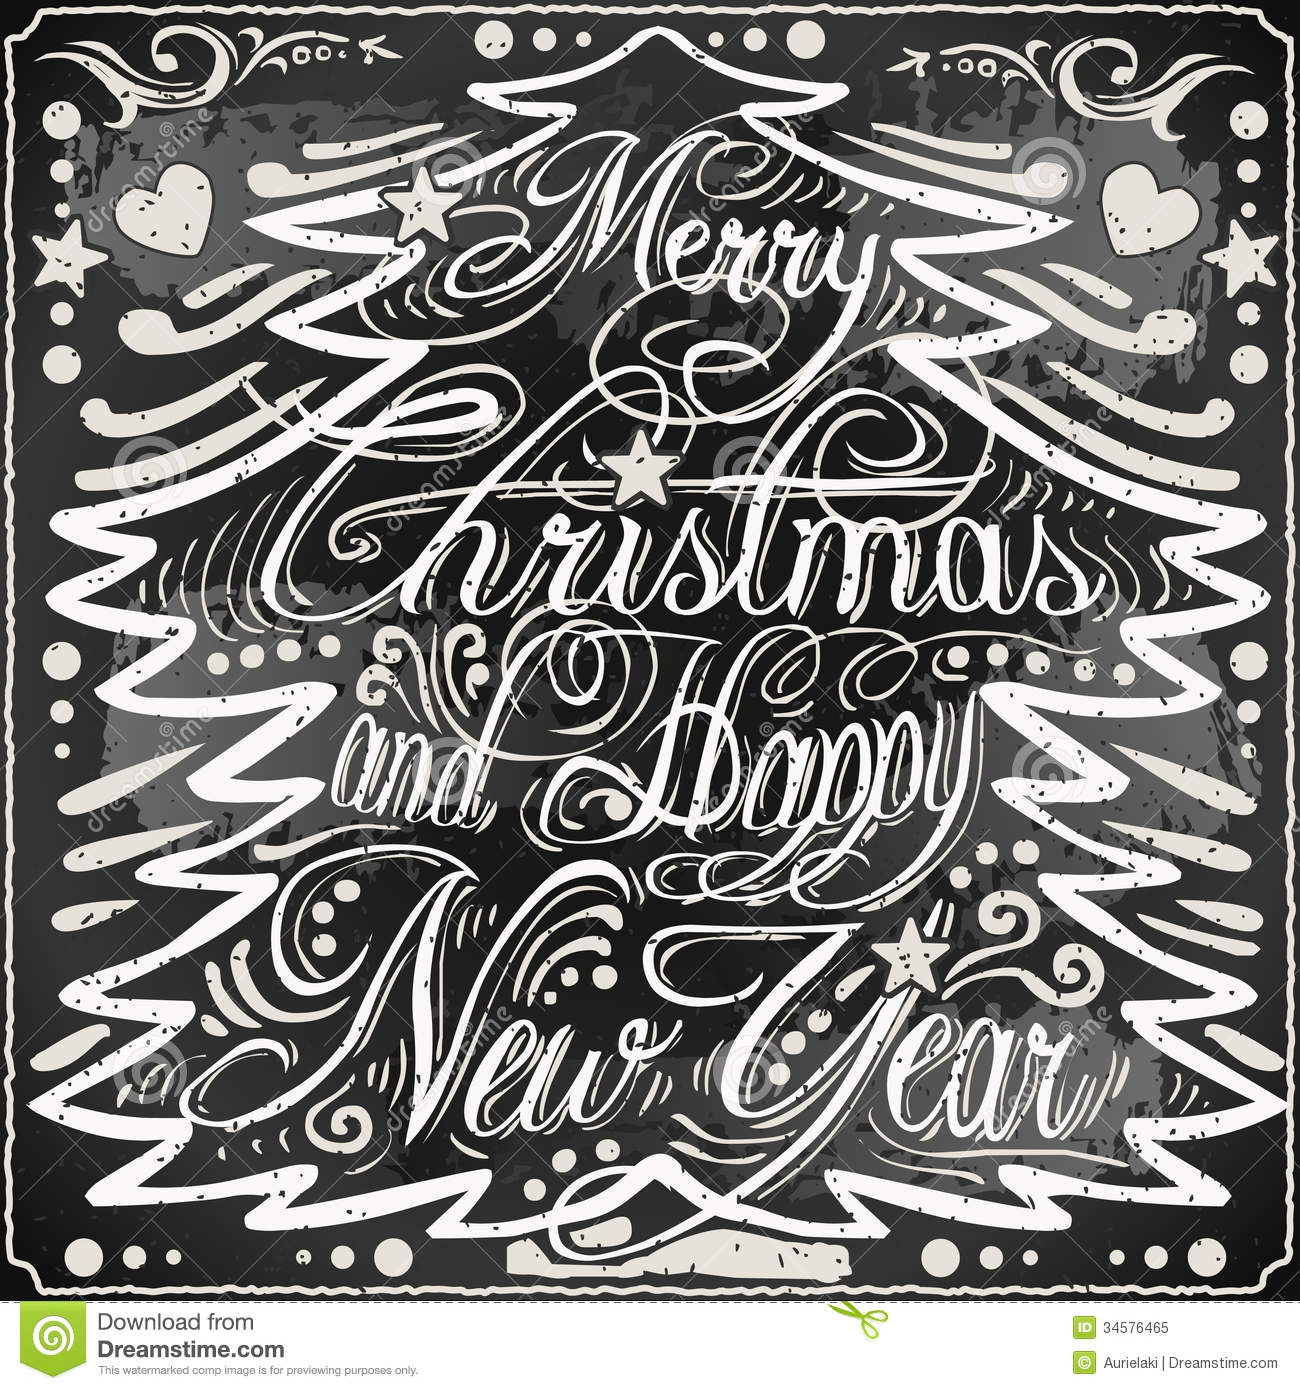 of a Vintage Merry Christmas and Happy New Year Text in §Christmas ...